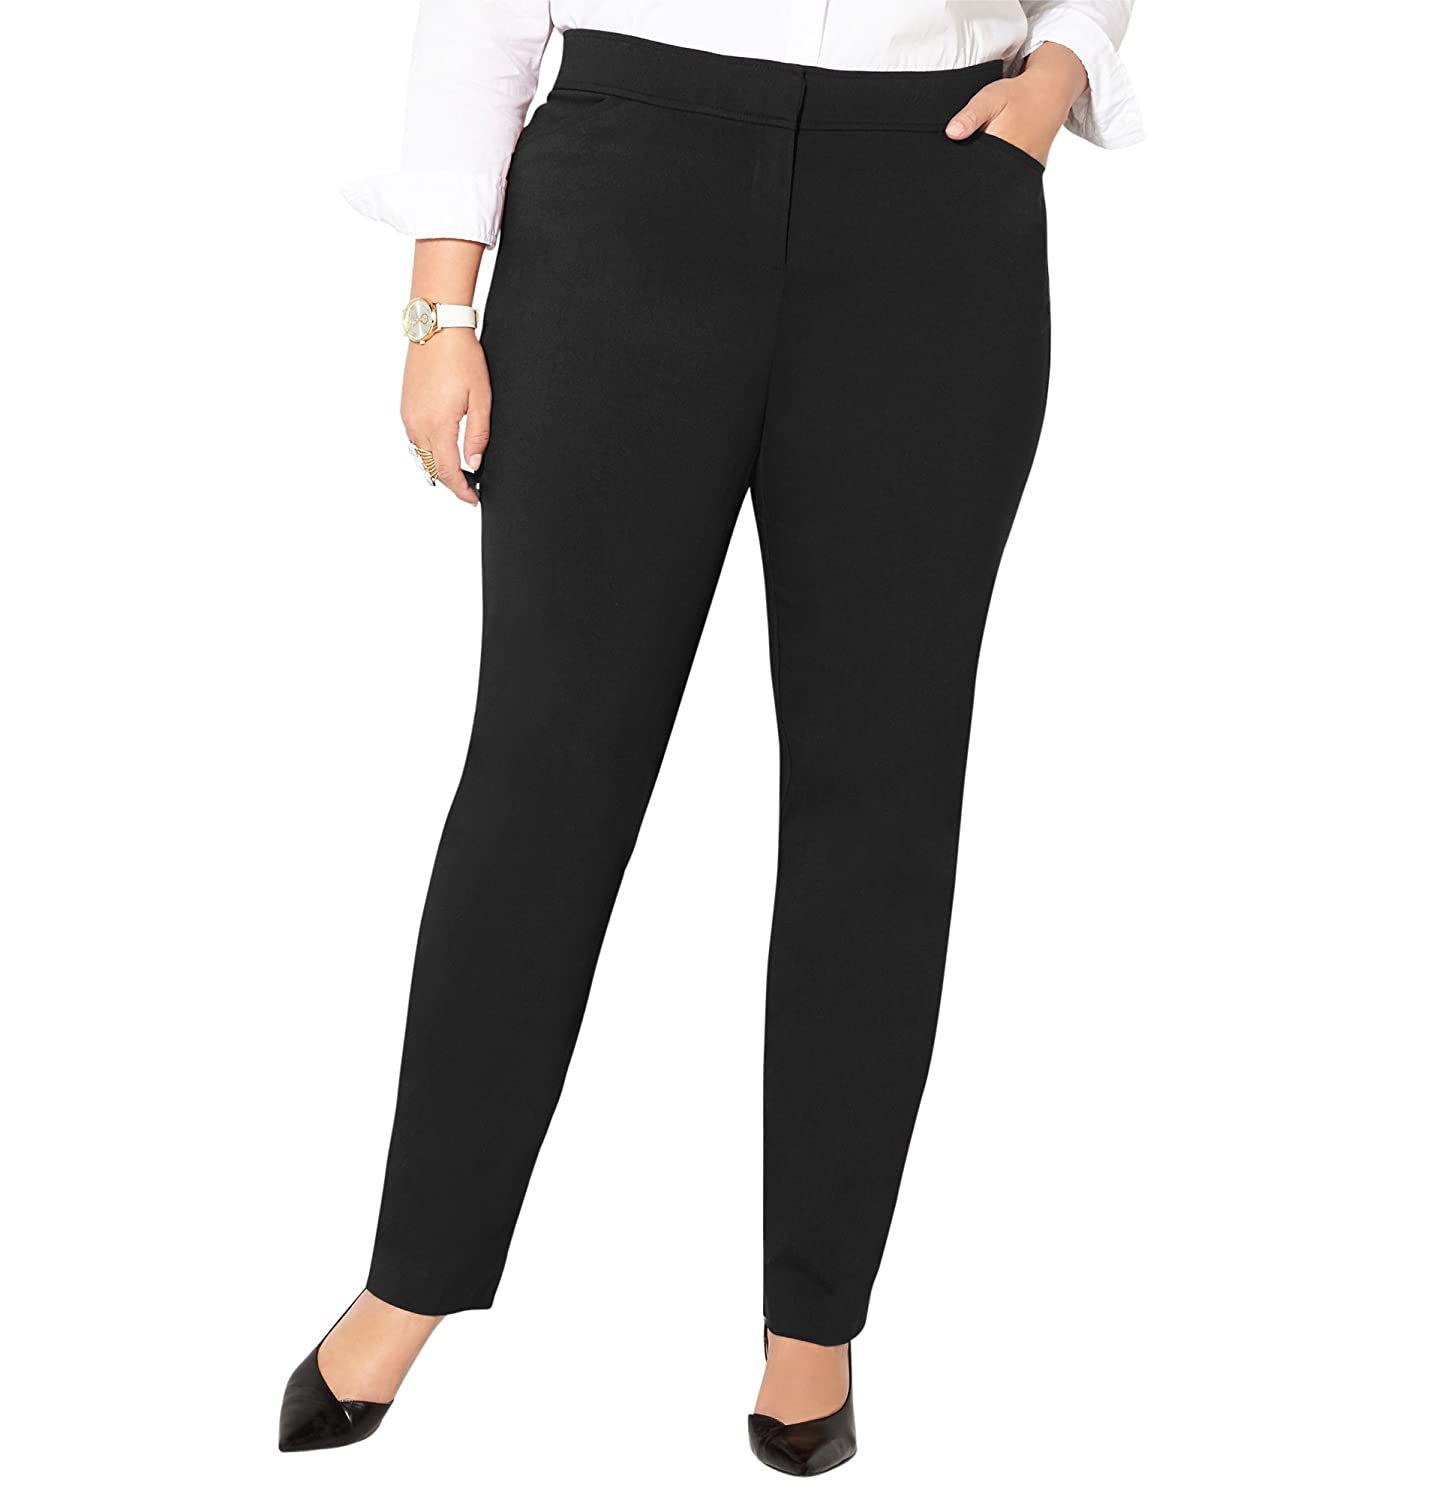 Avenue Women's Super Stretch Slim Leg Trouser Comfort Waist 14 Black 20771005